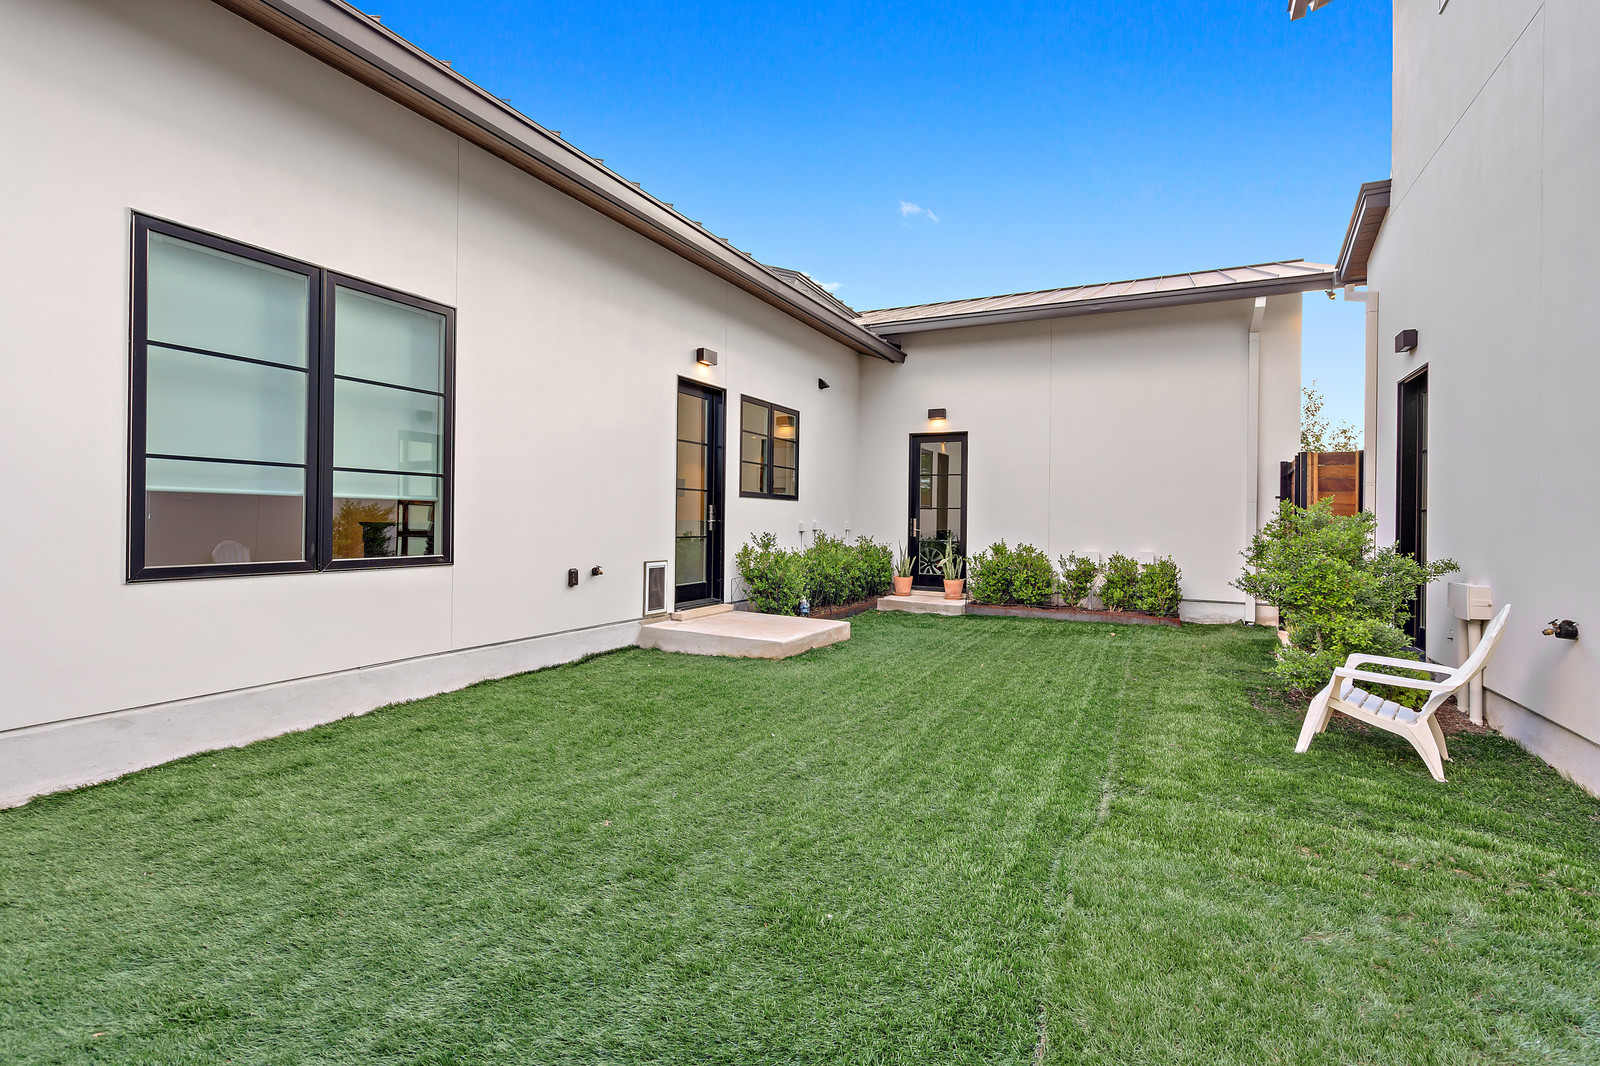 Protected courtyard with artificial turf perfect for pets